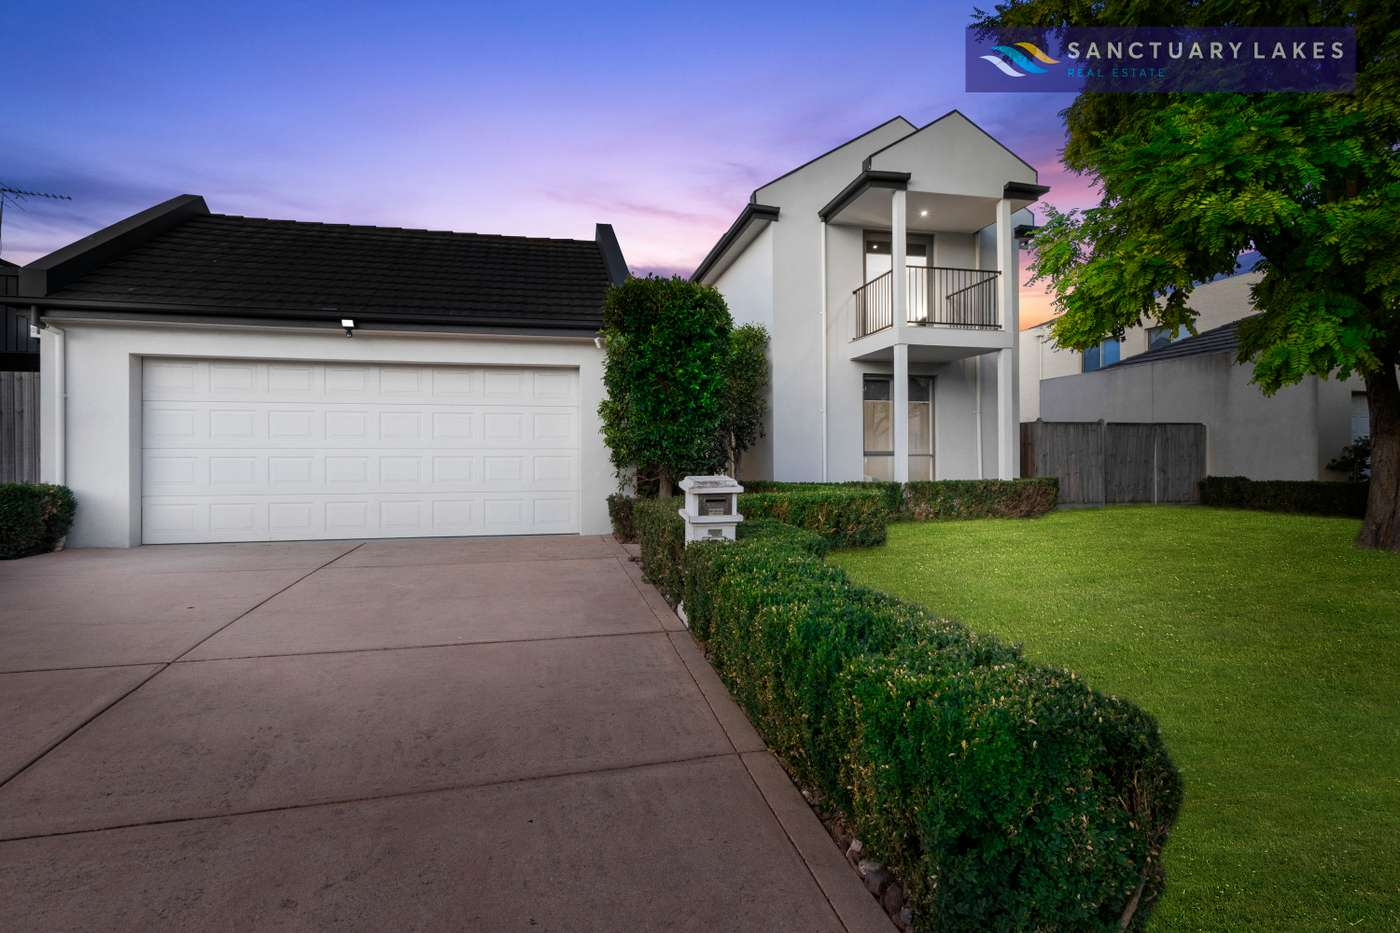 Main view of Homely house listing, 3 Saltbush Street, Sanctuary Lakes, VIC 3030